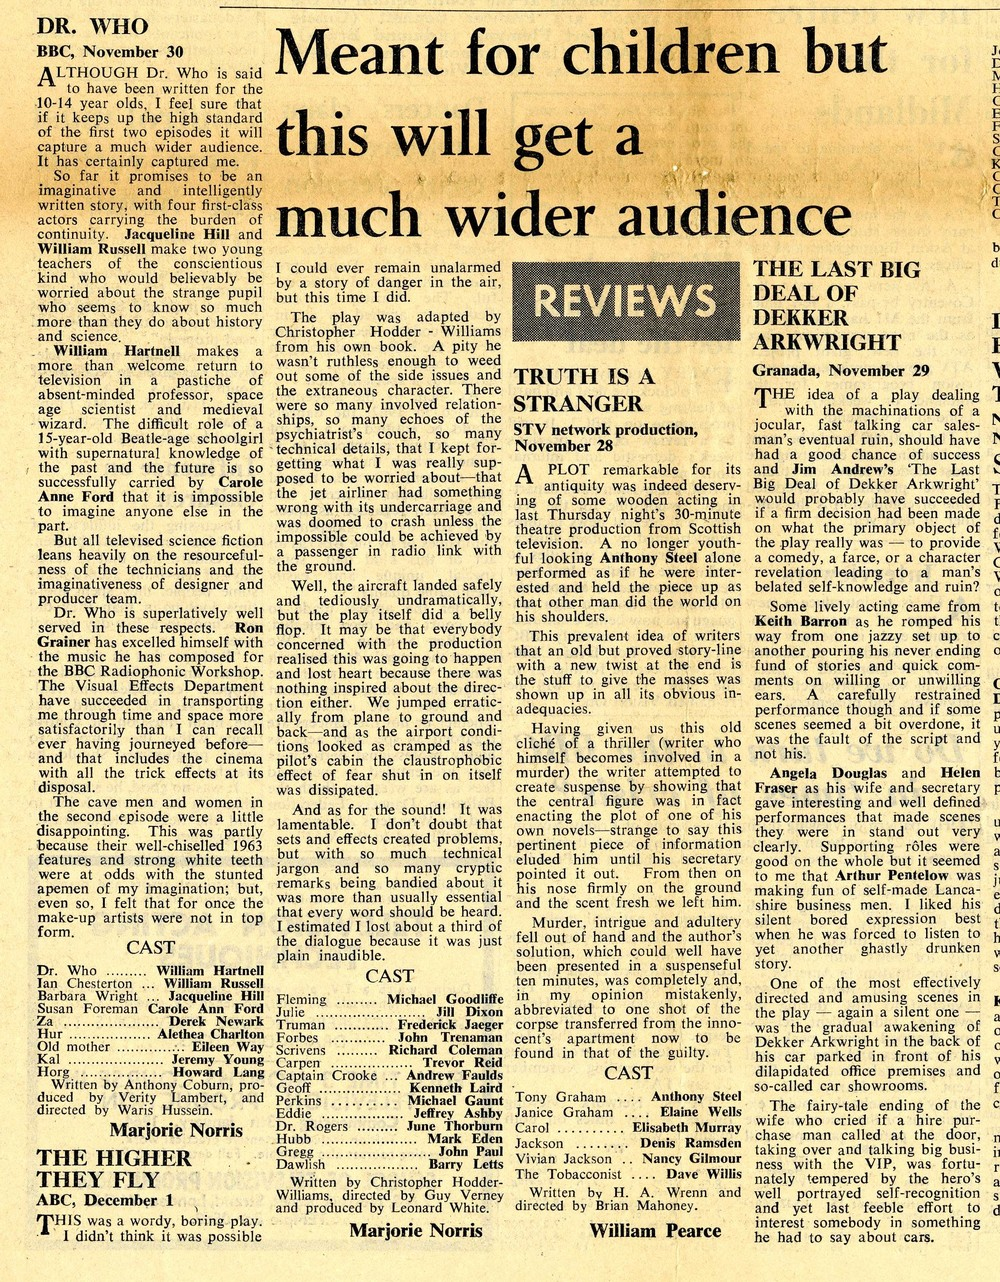 Early episode review in Stage and Television Today, 5 December 1963